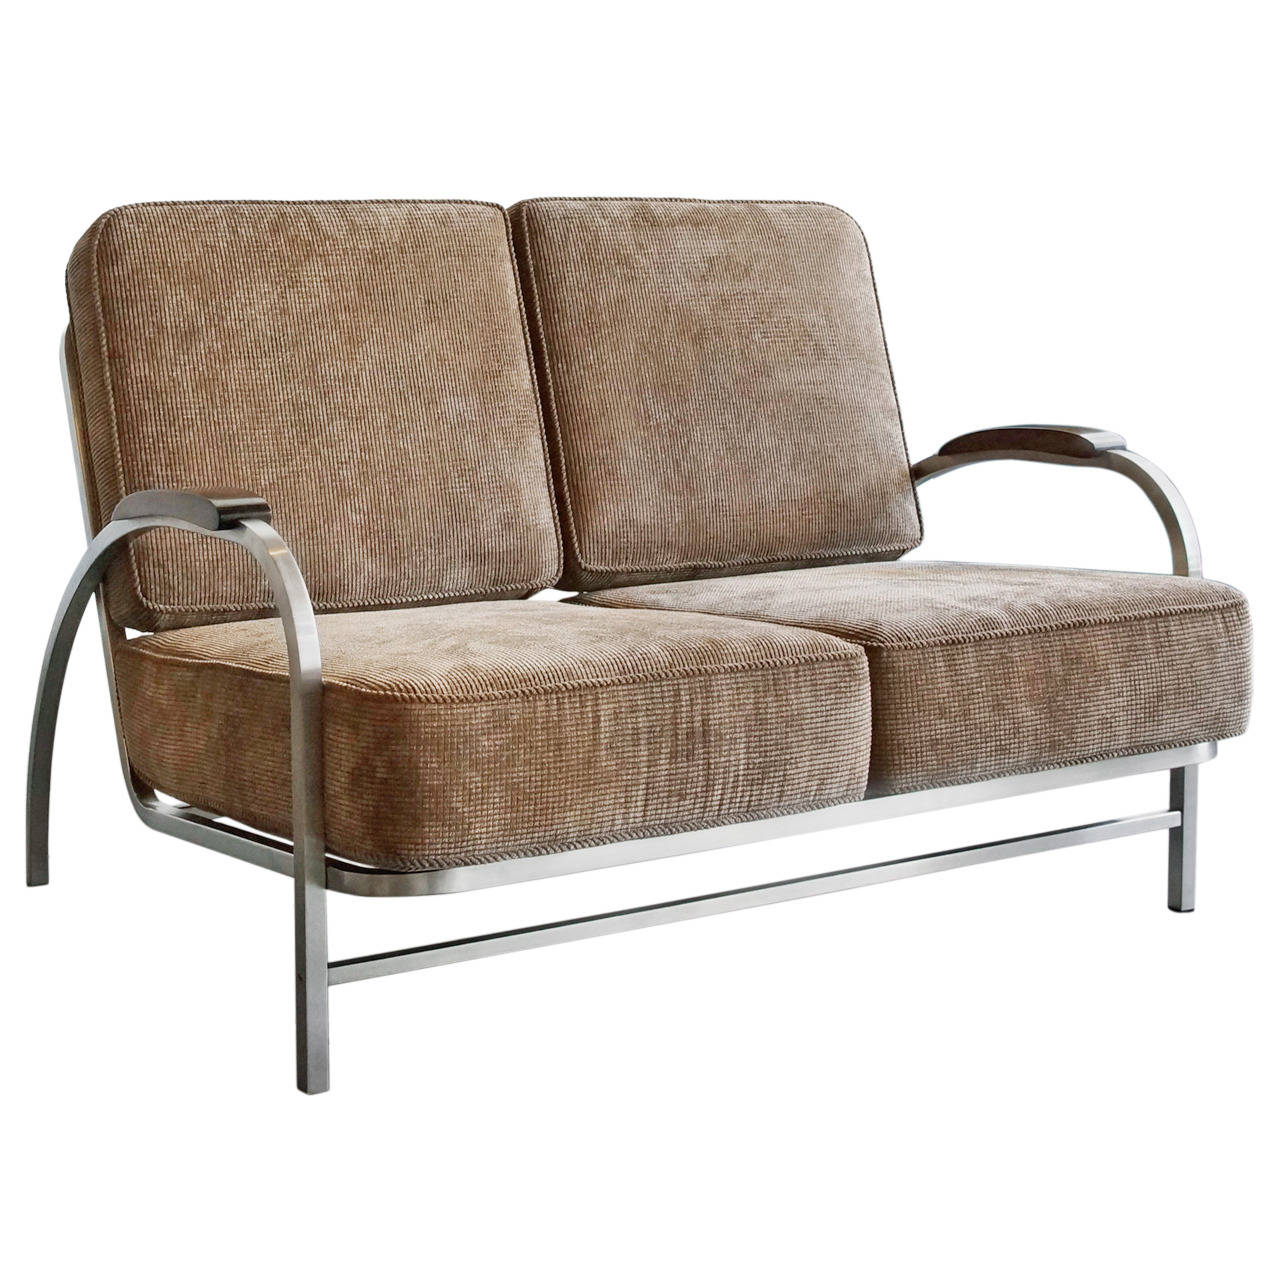 retro sofas fulham black chesterfield sofa melbourne style 2 seater natural fabric